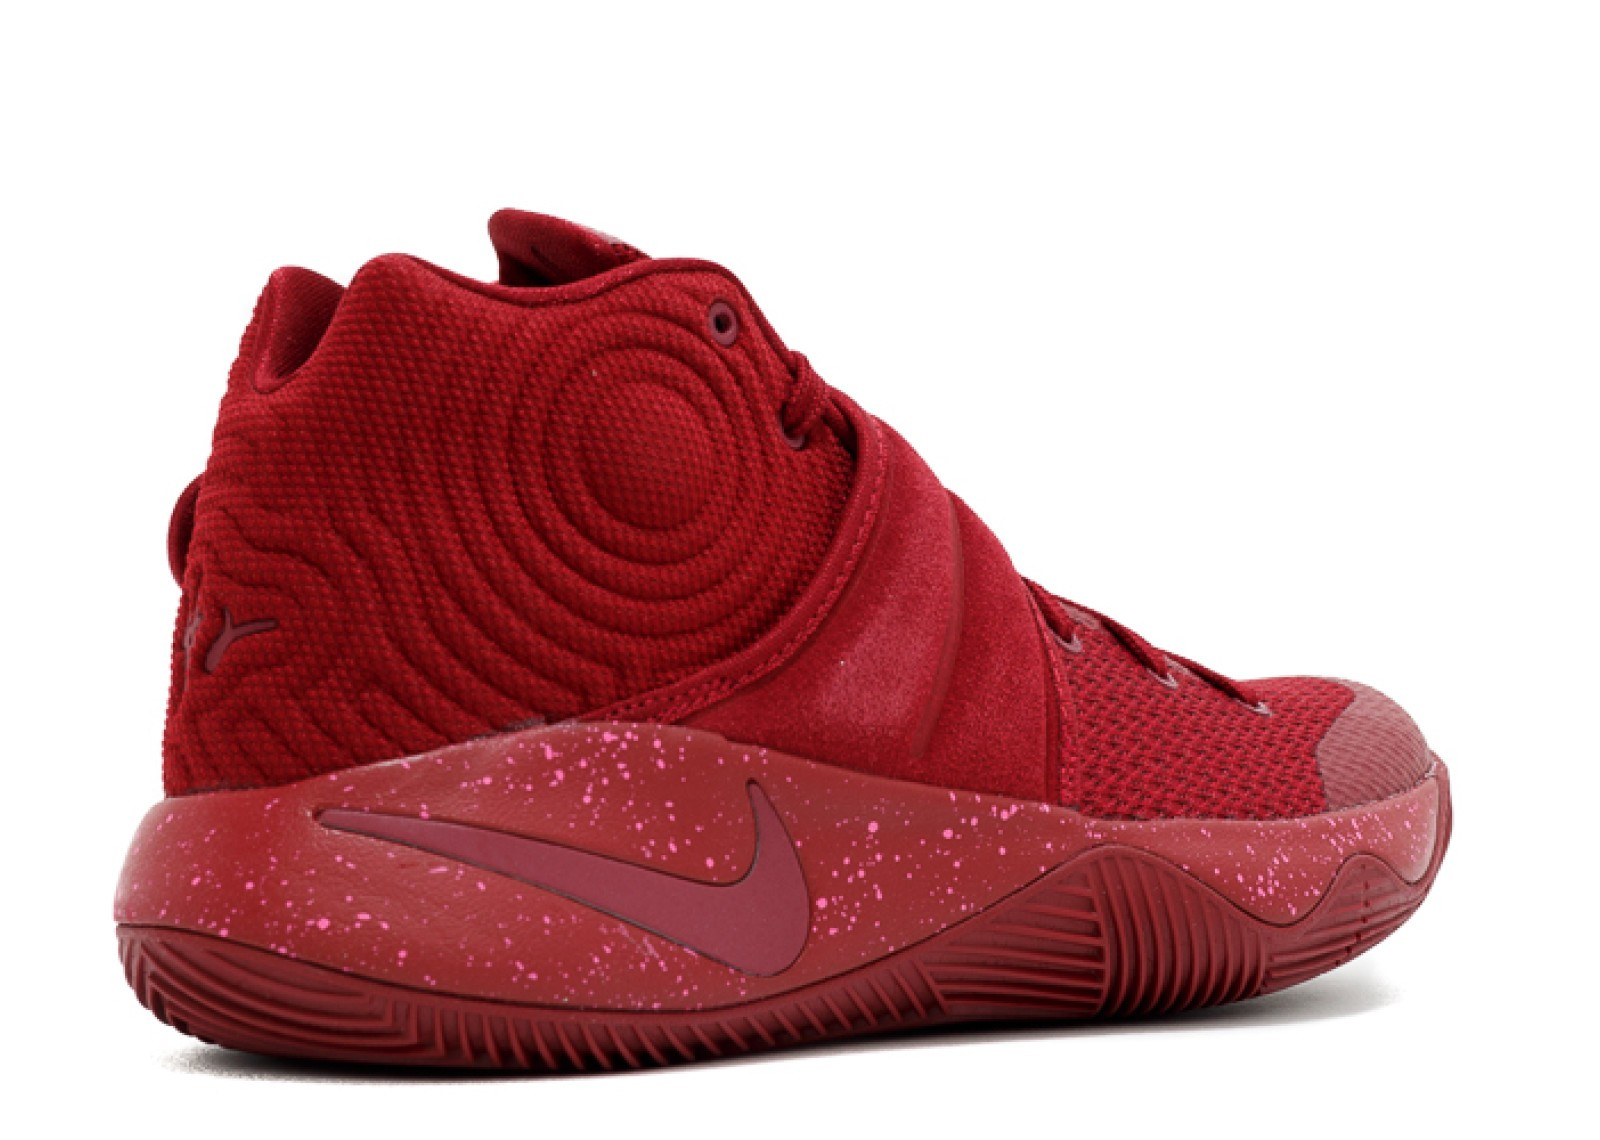 competitive price 178a2 cf887 ... Kyrie 2 Red Velvet Platinum Black Pure Red Team 819583-600 ...